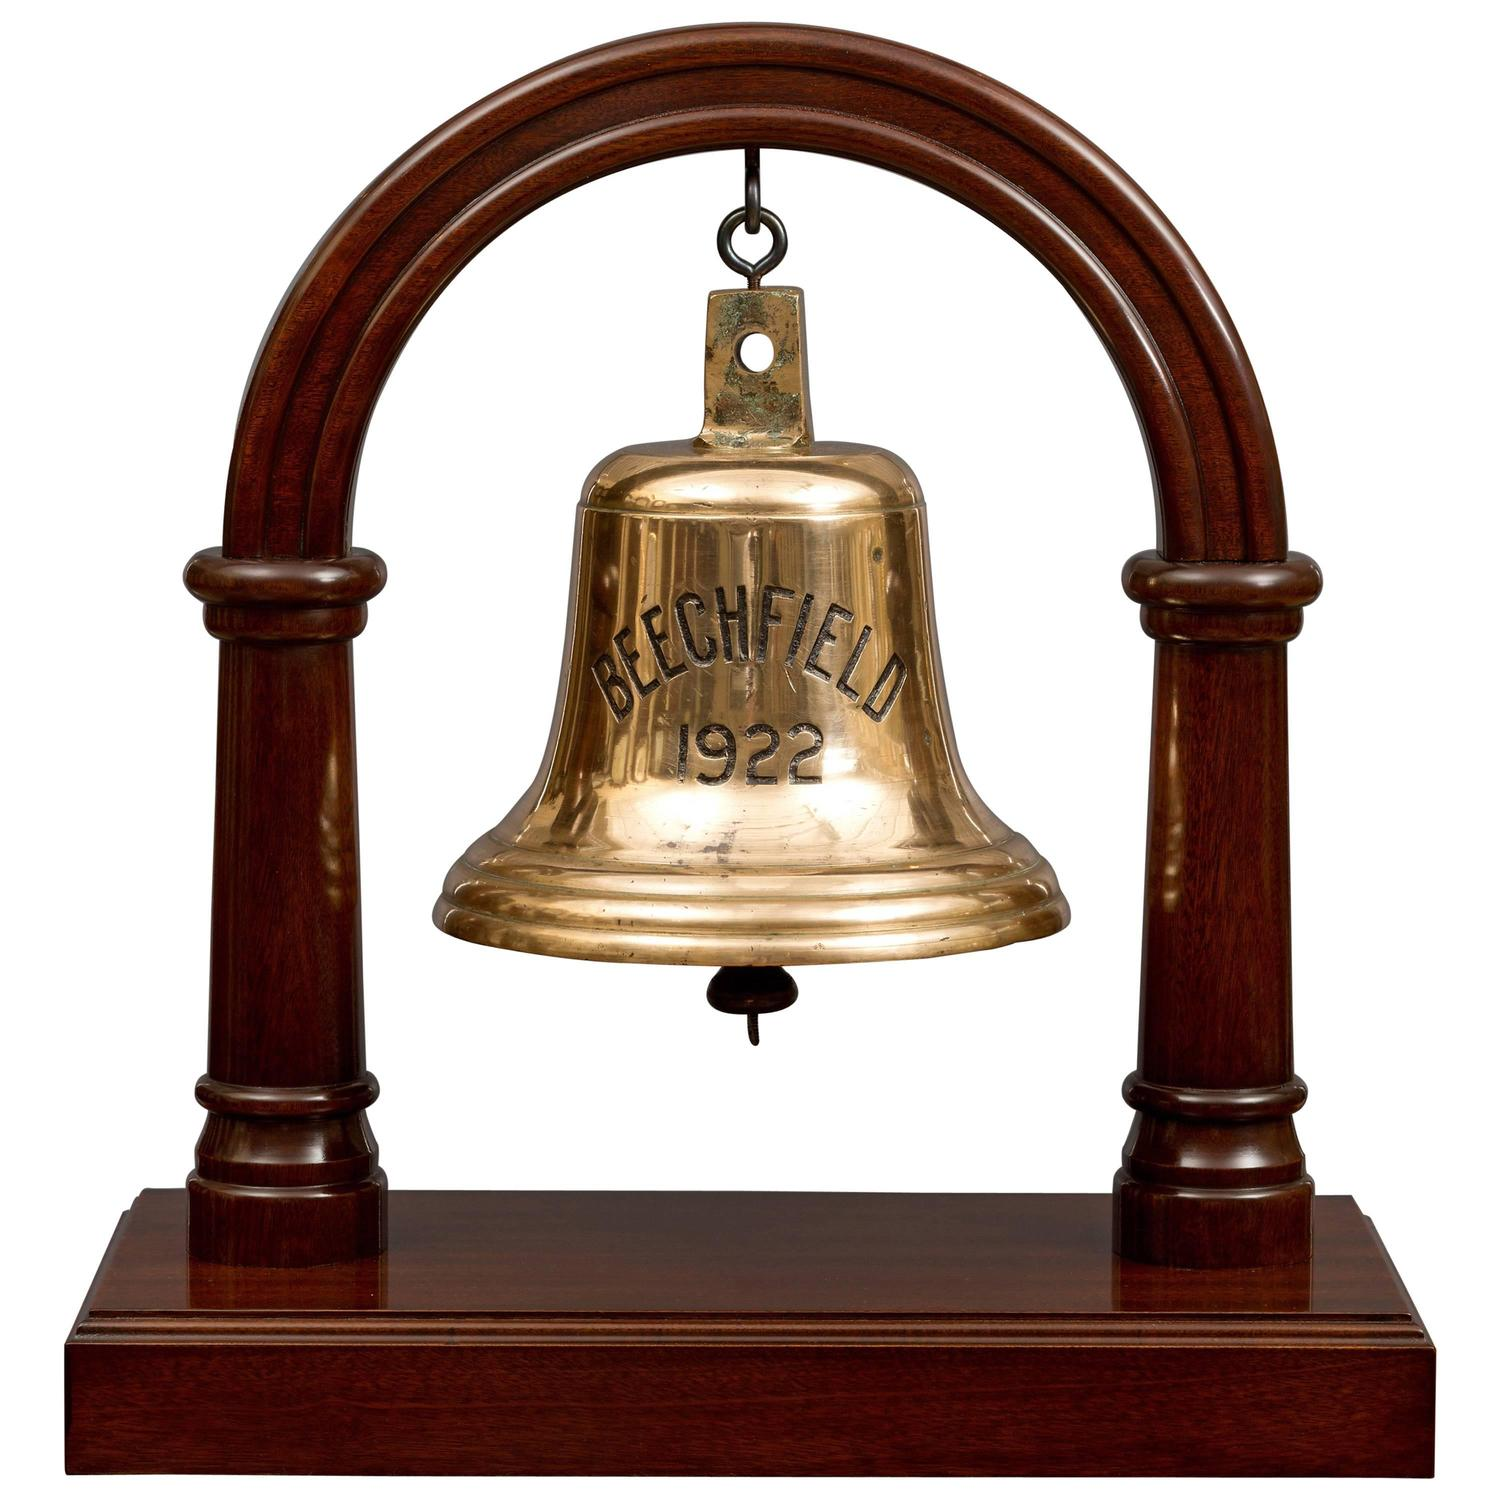 Antique Ships Bell from S.S. Beechfield For Sale at 1stdibs